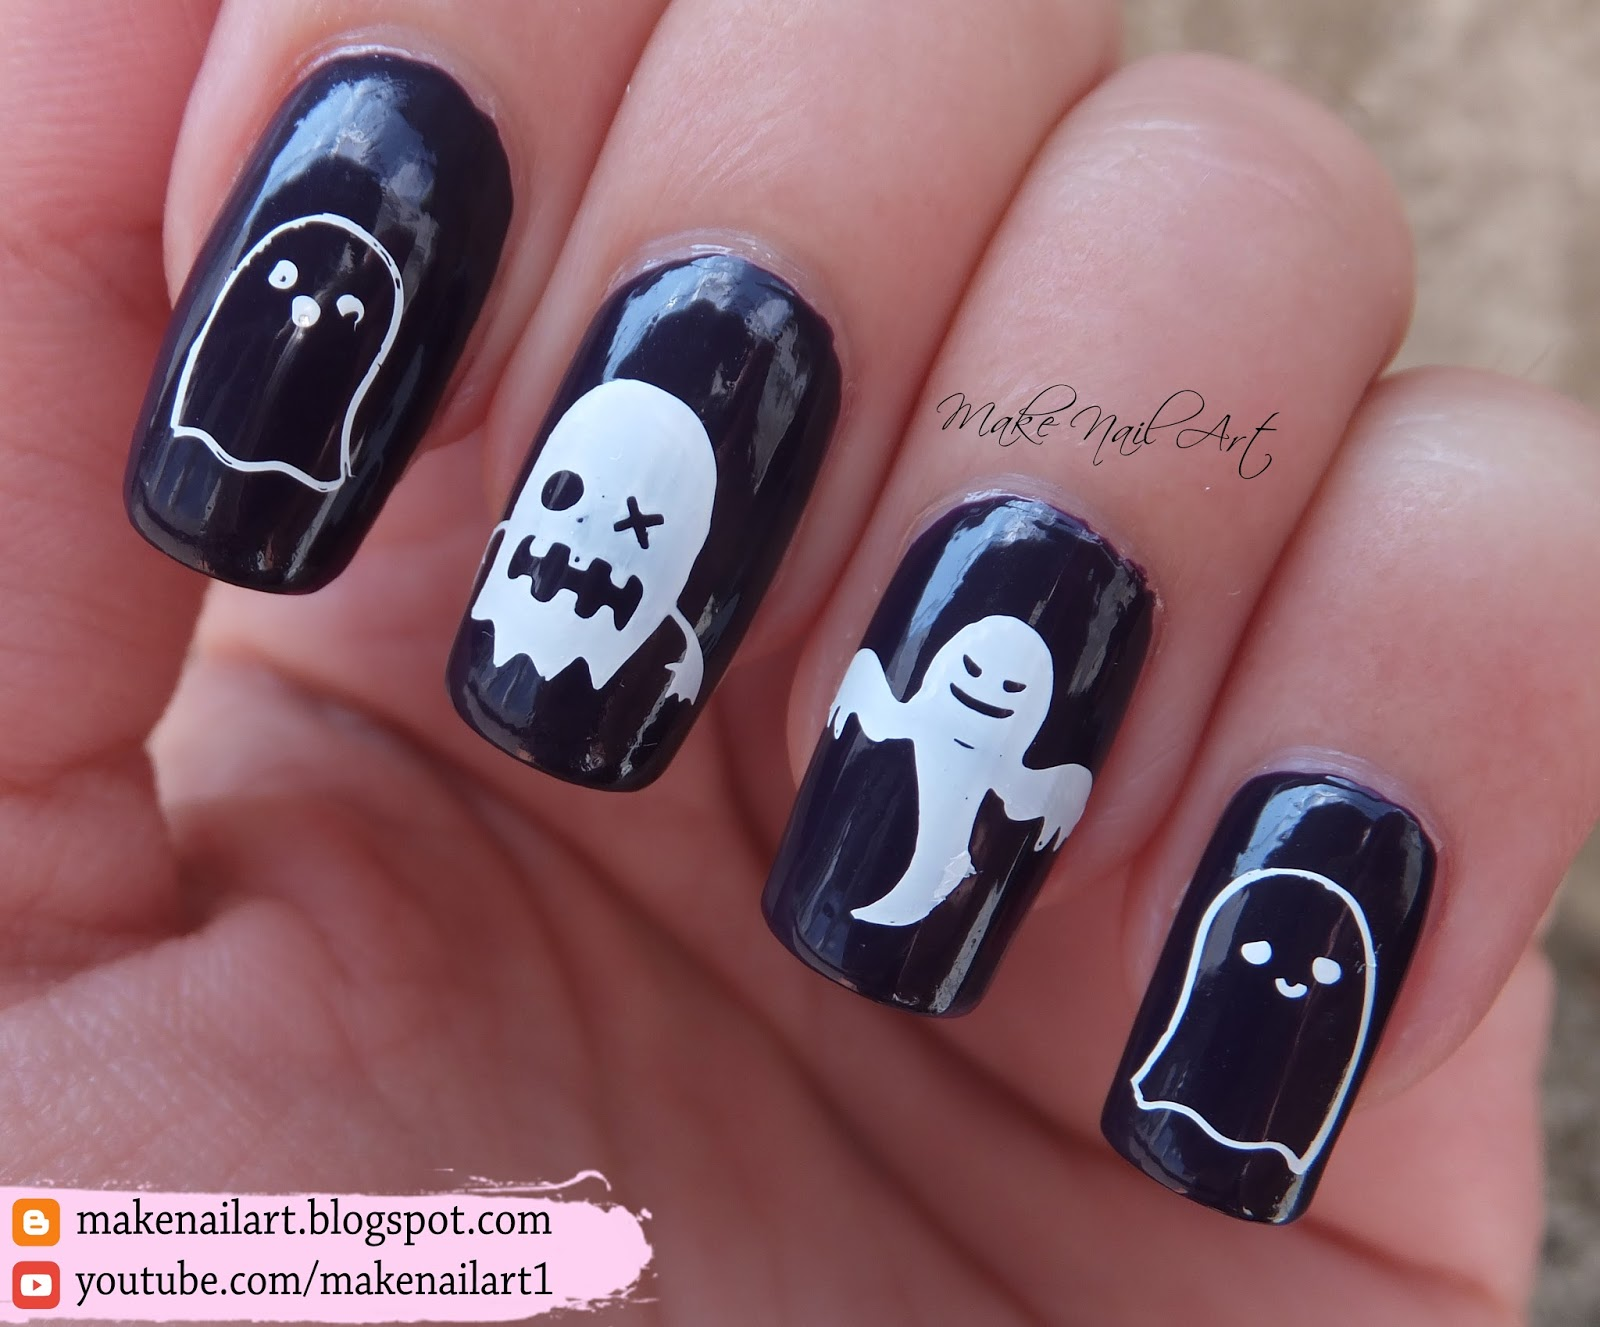 Make Nail Art Ghost Stamping Nail Art Design 31dc2016